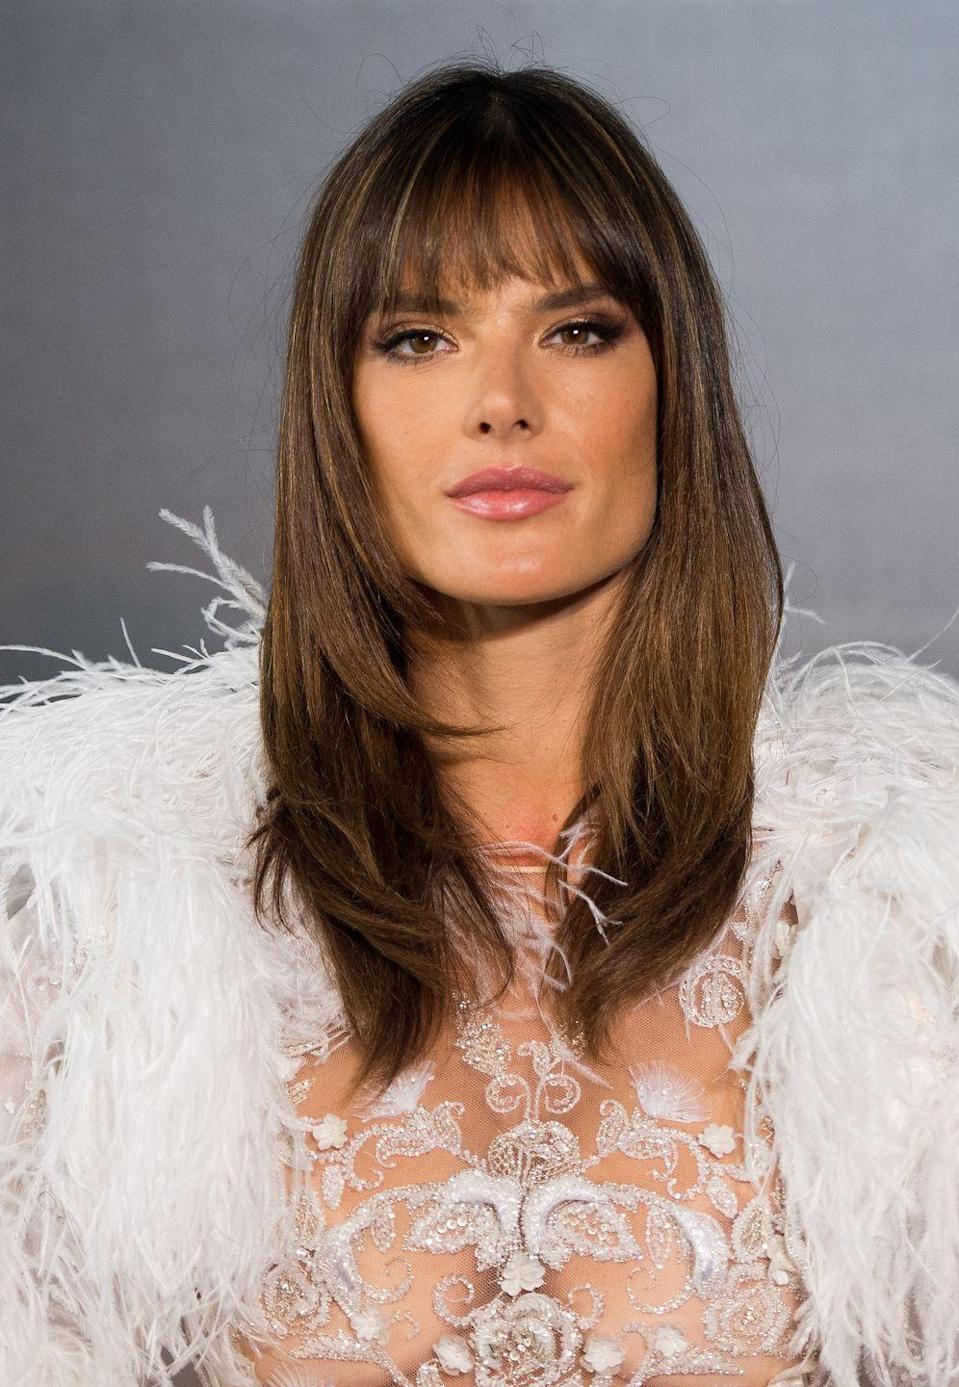 <p>Alessandra has had a fringe for a long time and we reckon it possibly looks its best in a high pony. The layered look she's sporting has a certain 'supermodel-of-the90s' look about it, which we're not complaining about.</p>